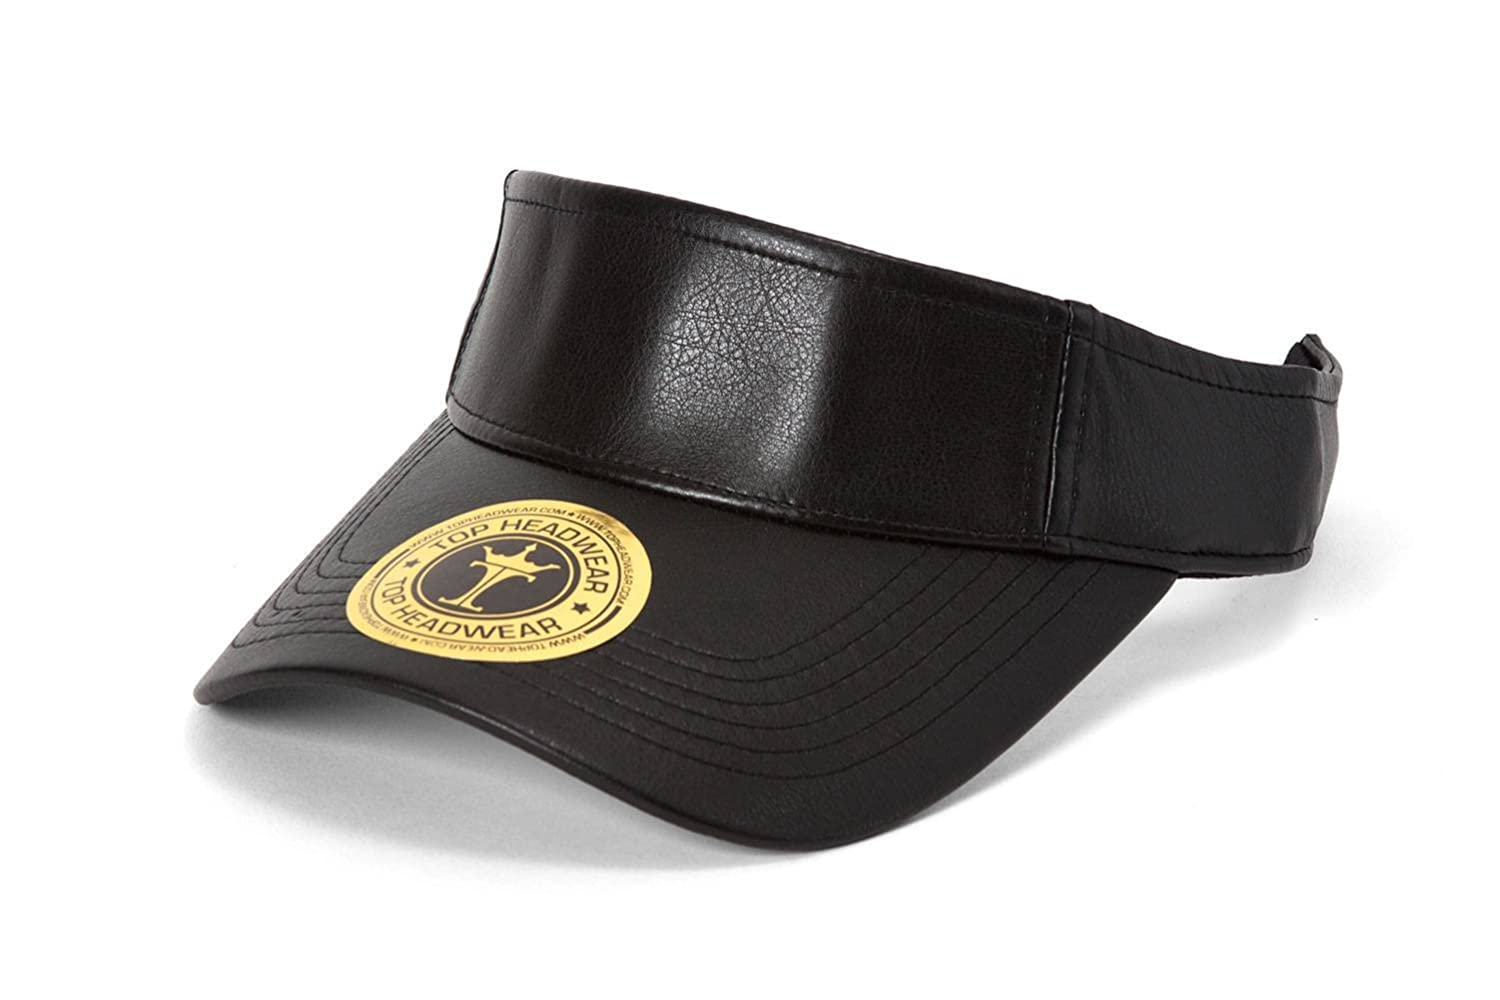 TopHeadwear Vegan Leather Adjustable Visors - Black TOP HEADWEAR